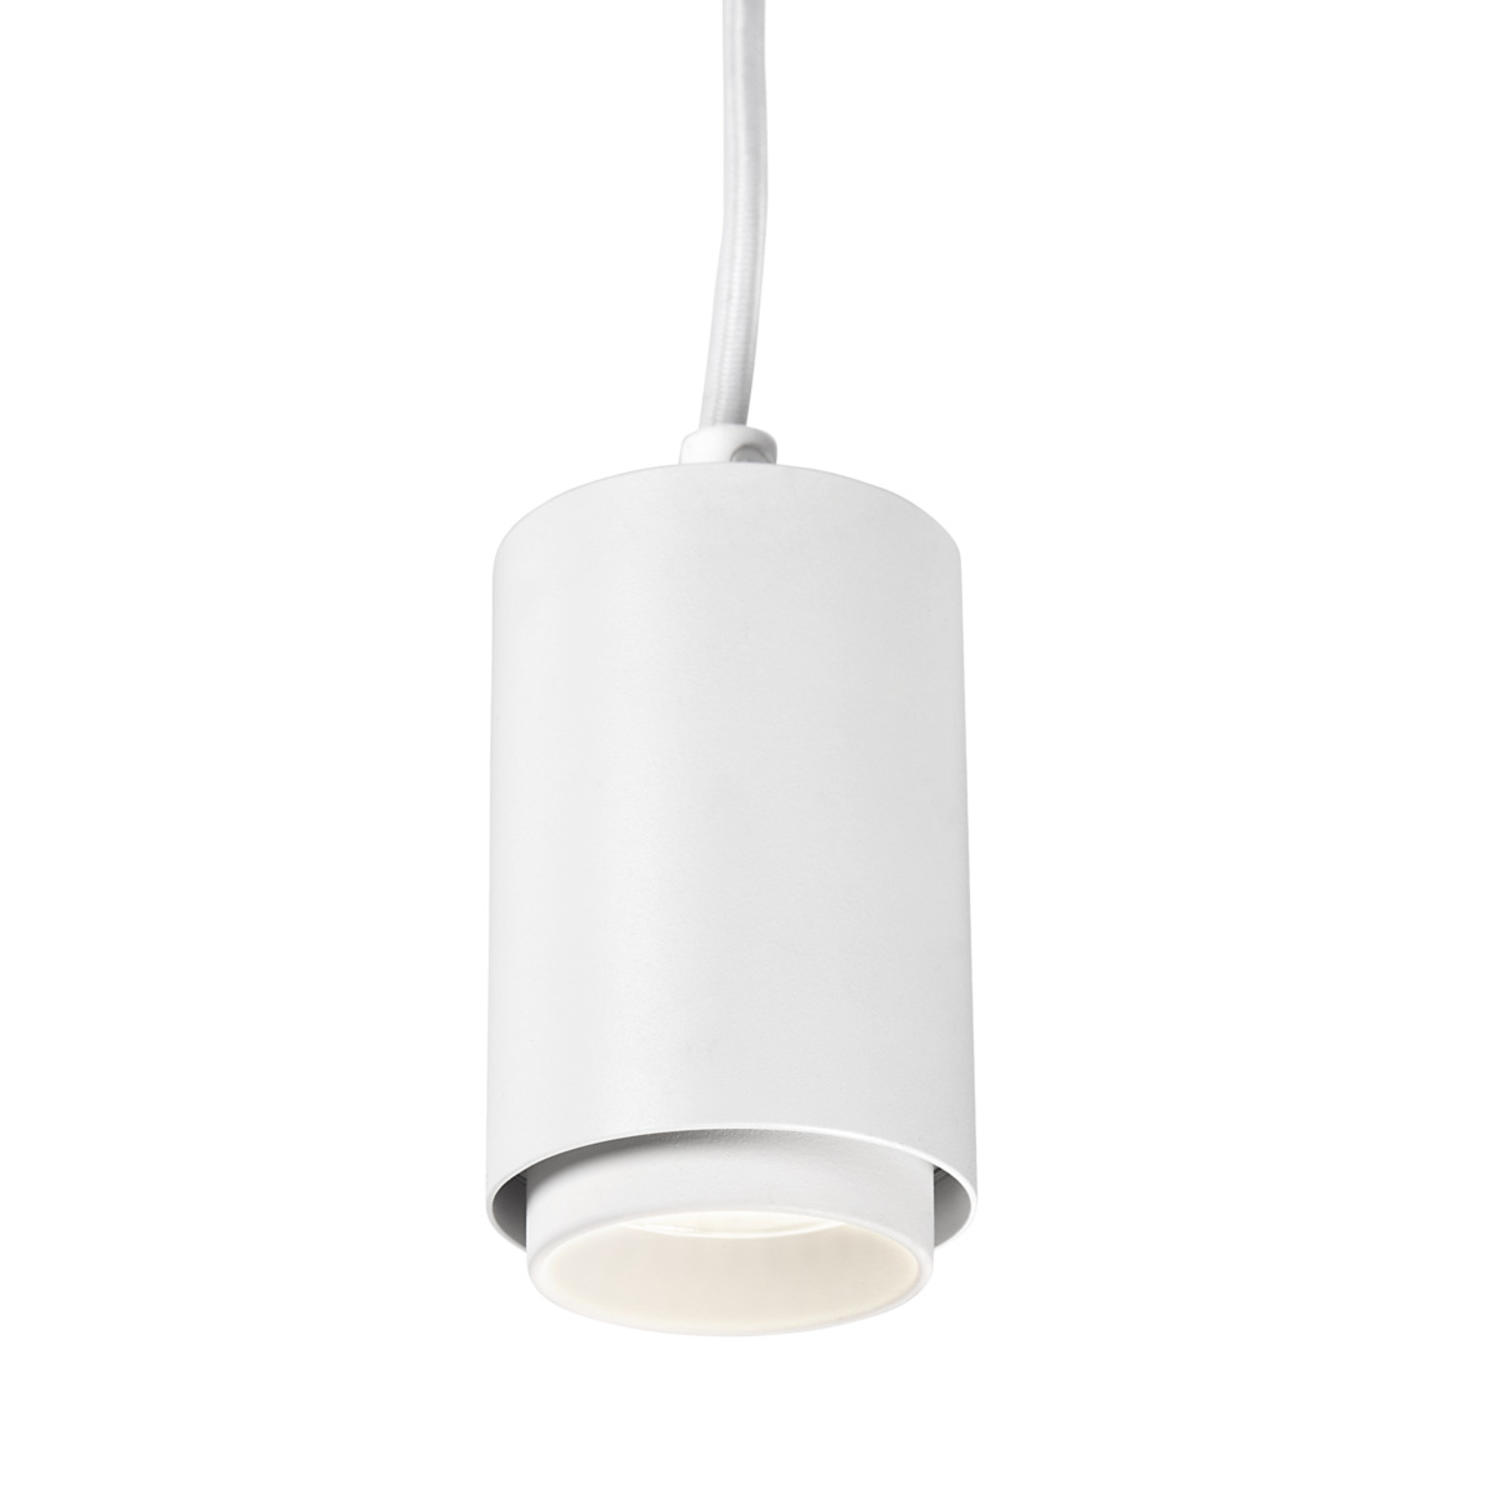 Focus Pendant Micro 1-phase 36° White 3000K